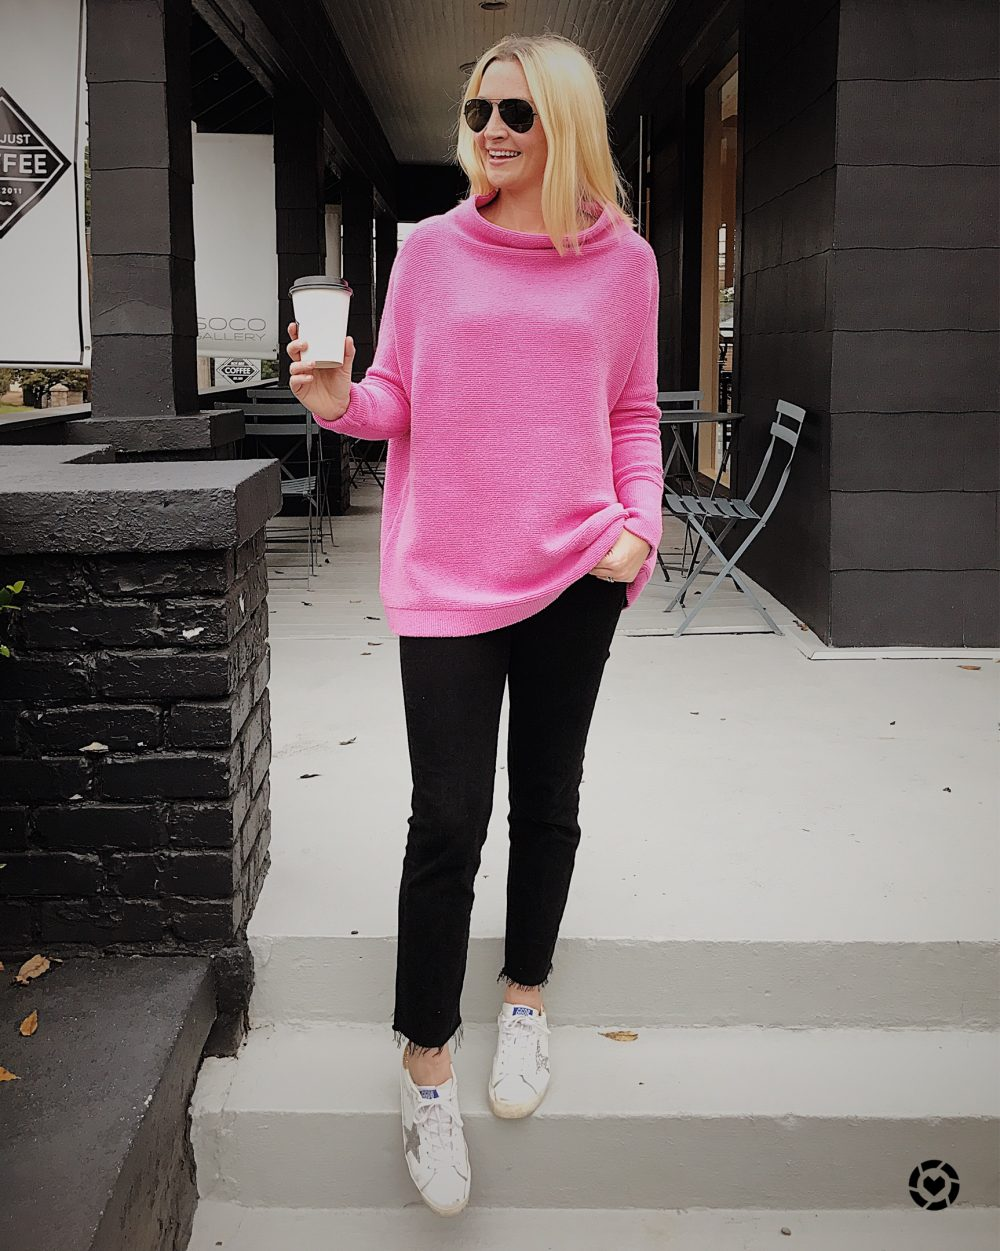 Free People Tunic Sweater in Pink with Golden Goose Sneakers